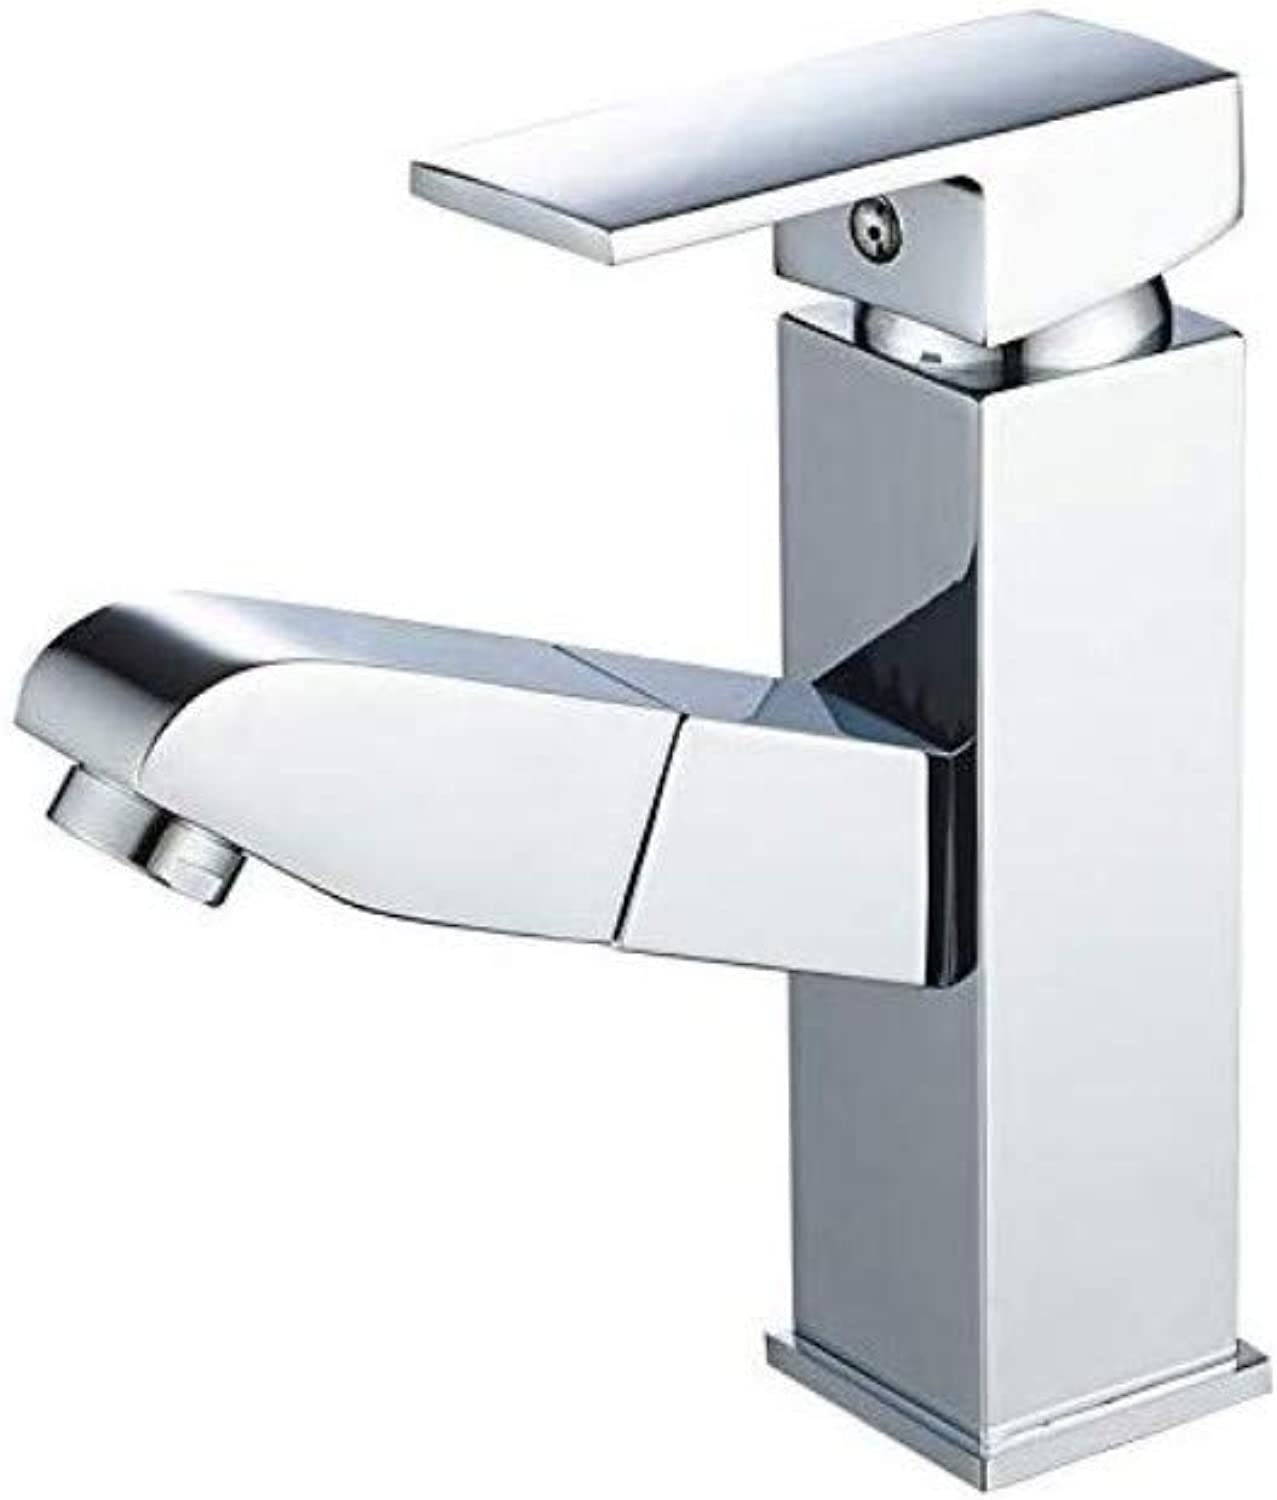 Copper Faucet Basin Pull Wash Head Hot and Cold Water Square Wash Basin Wash Basin Telescopic Head